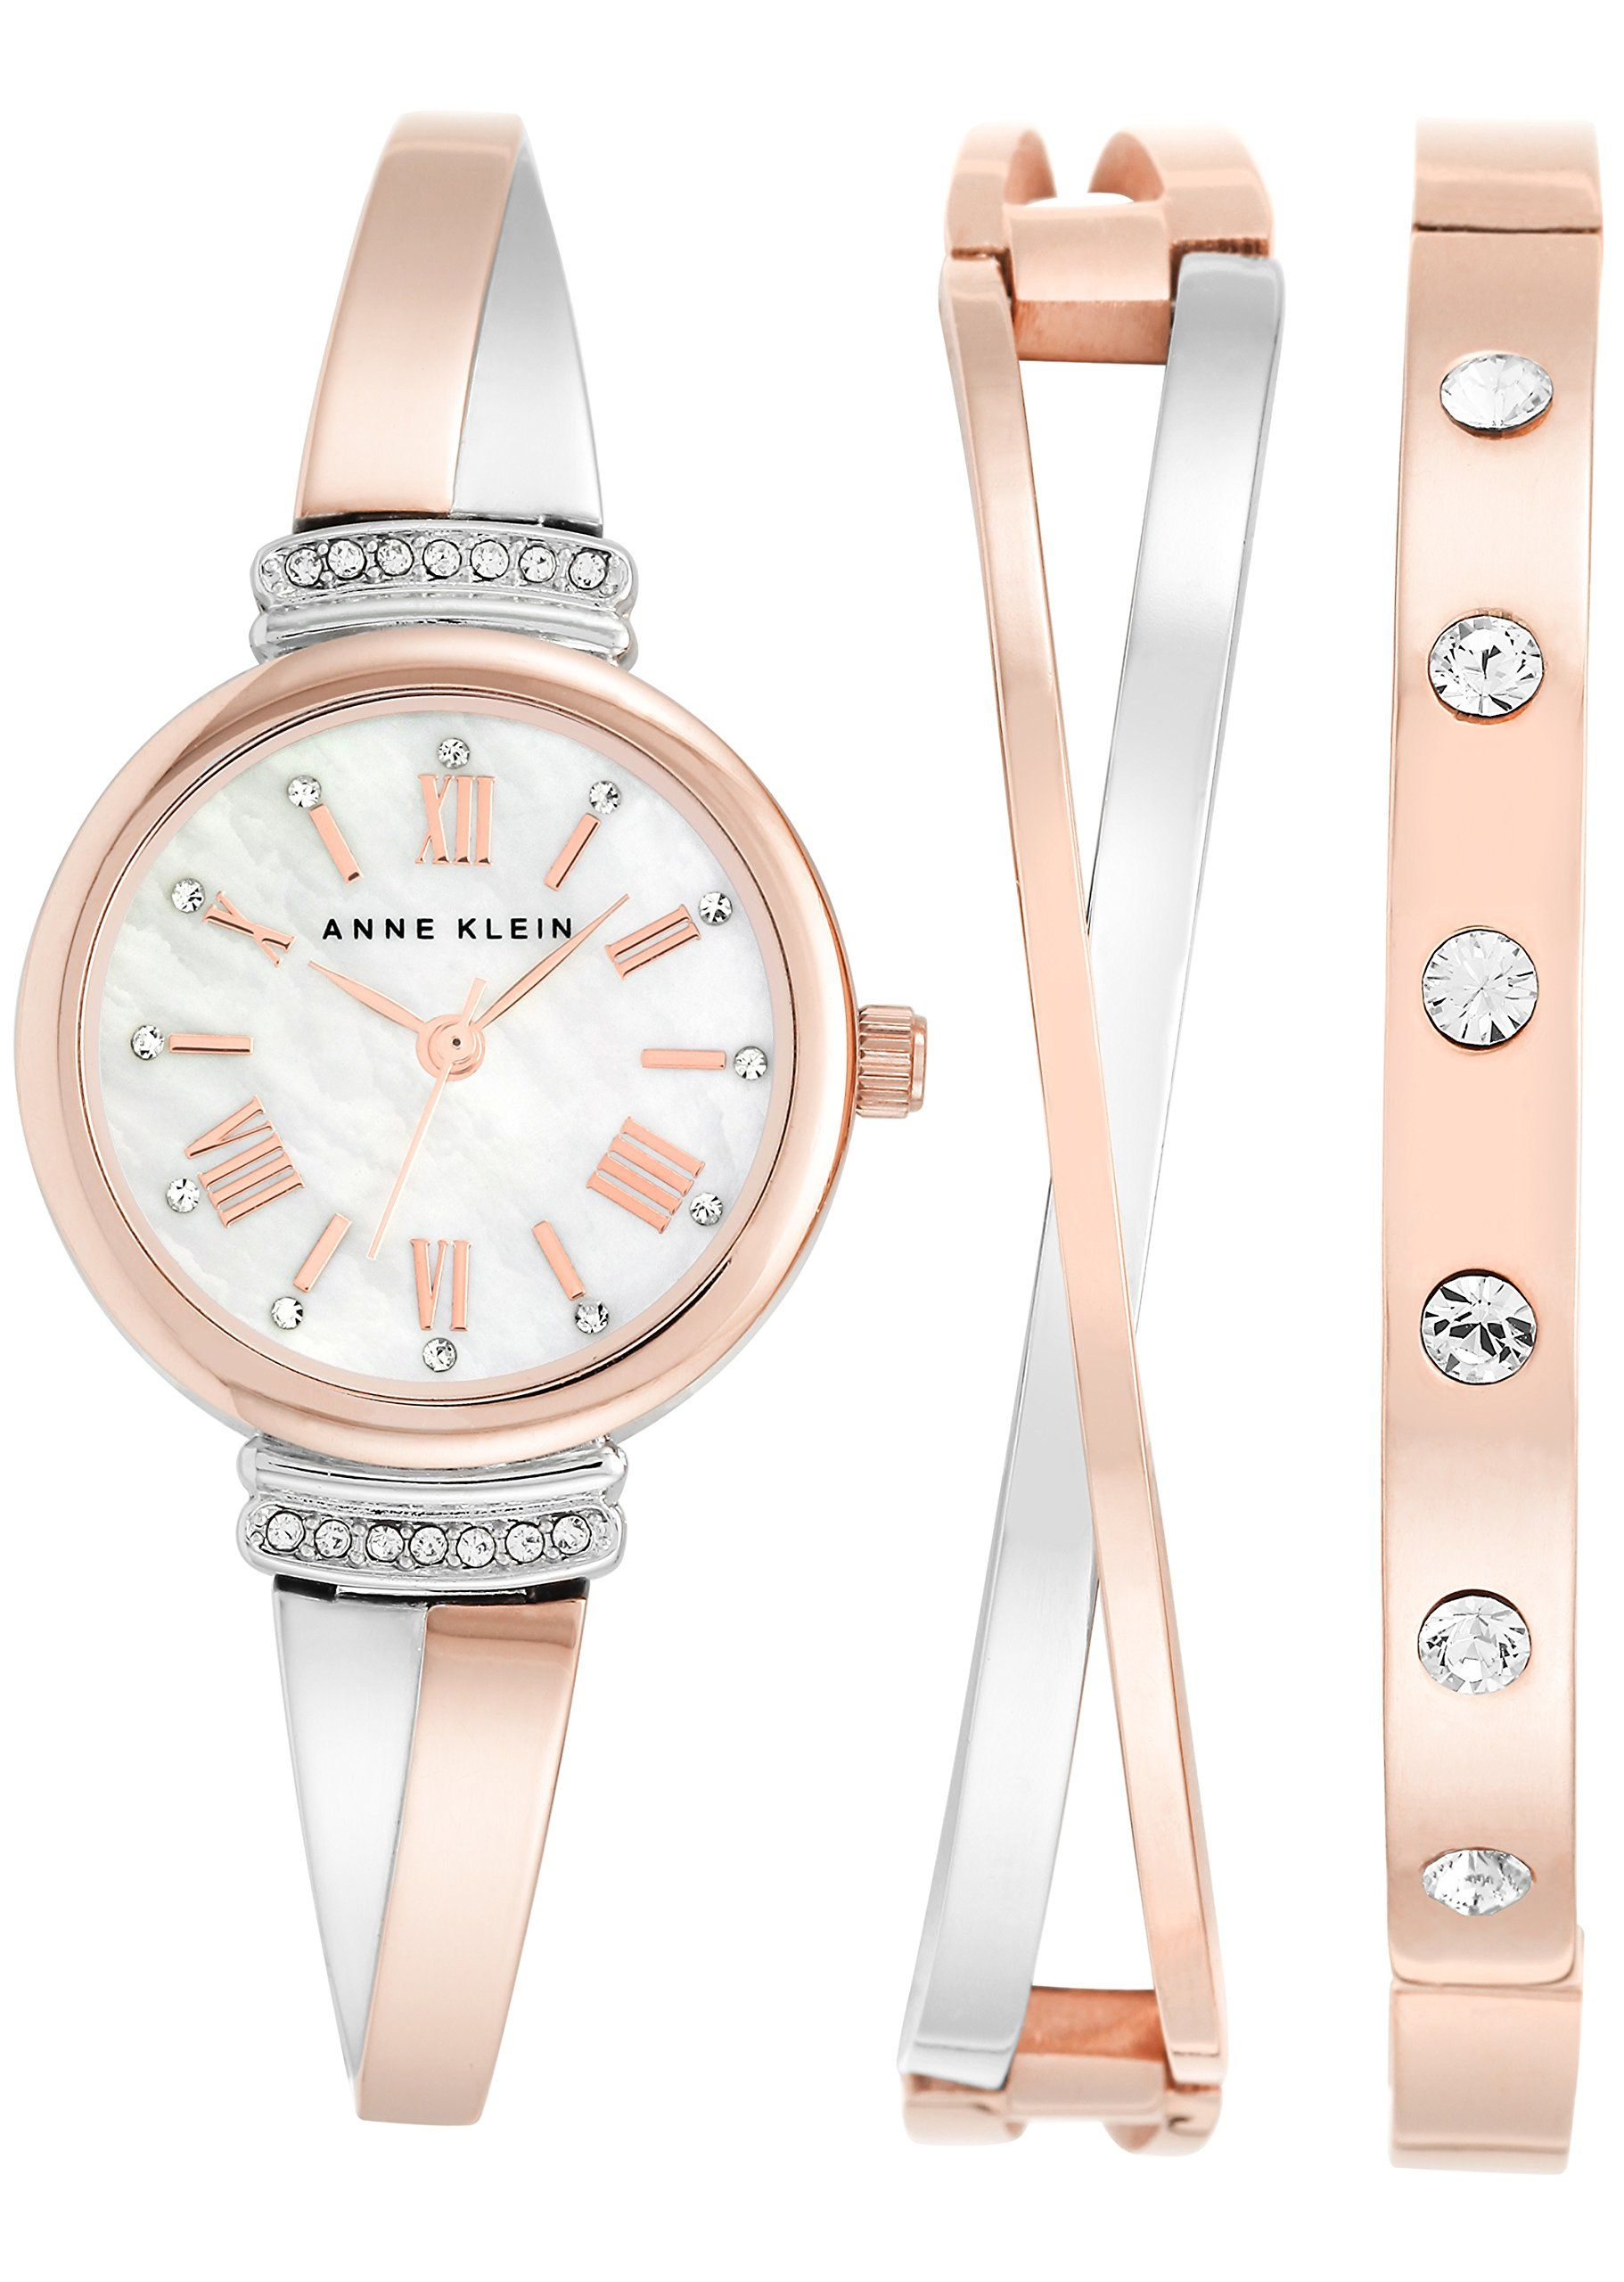 db86b1ee8449f Anne Klein Women s AK 2245RTST Swarovski Crystal Accented Rose Gold-Tone  and Silver-Tone Bangle Watch and Bracelet Set